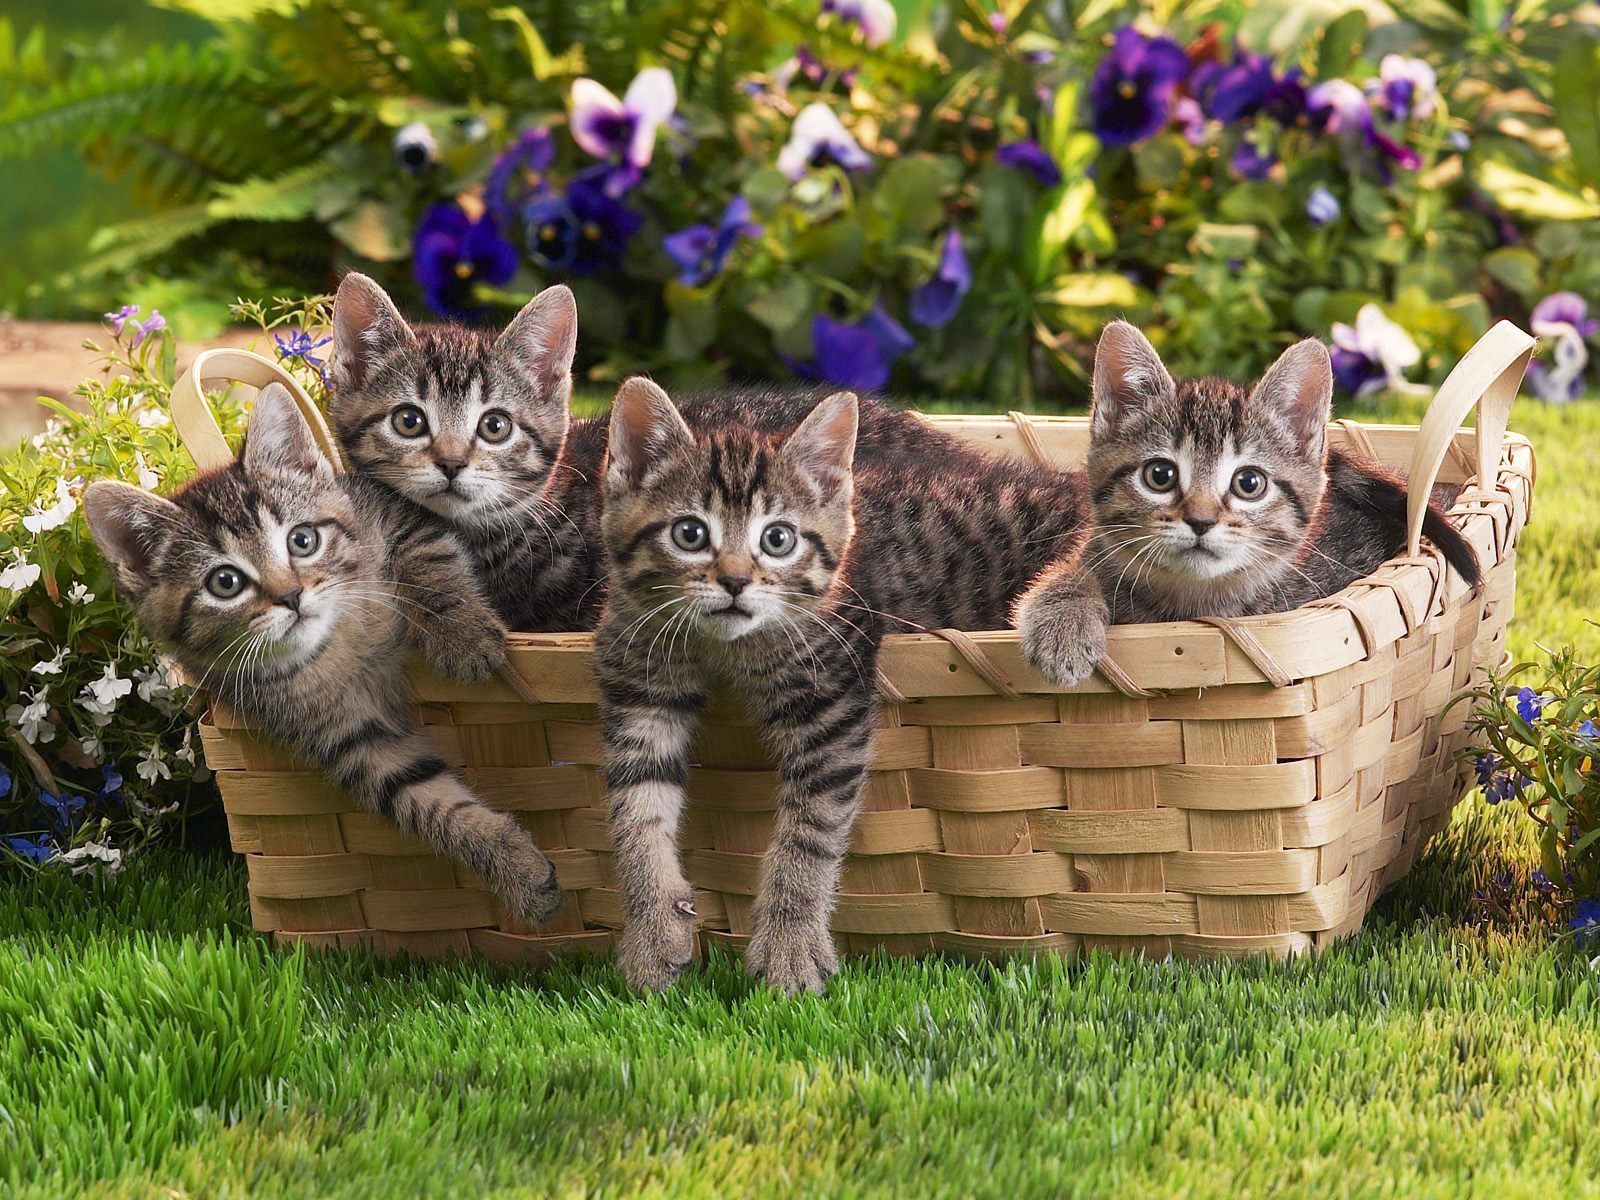 146153 Screensavers and Wallpapers Kittens for phone. Download Animals, Flowers, Grass, Basket, Kittens, Lots Of, Multitude pictures for free